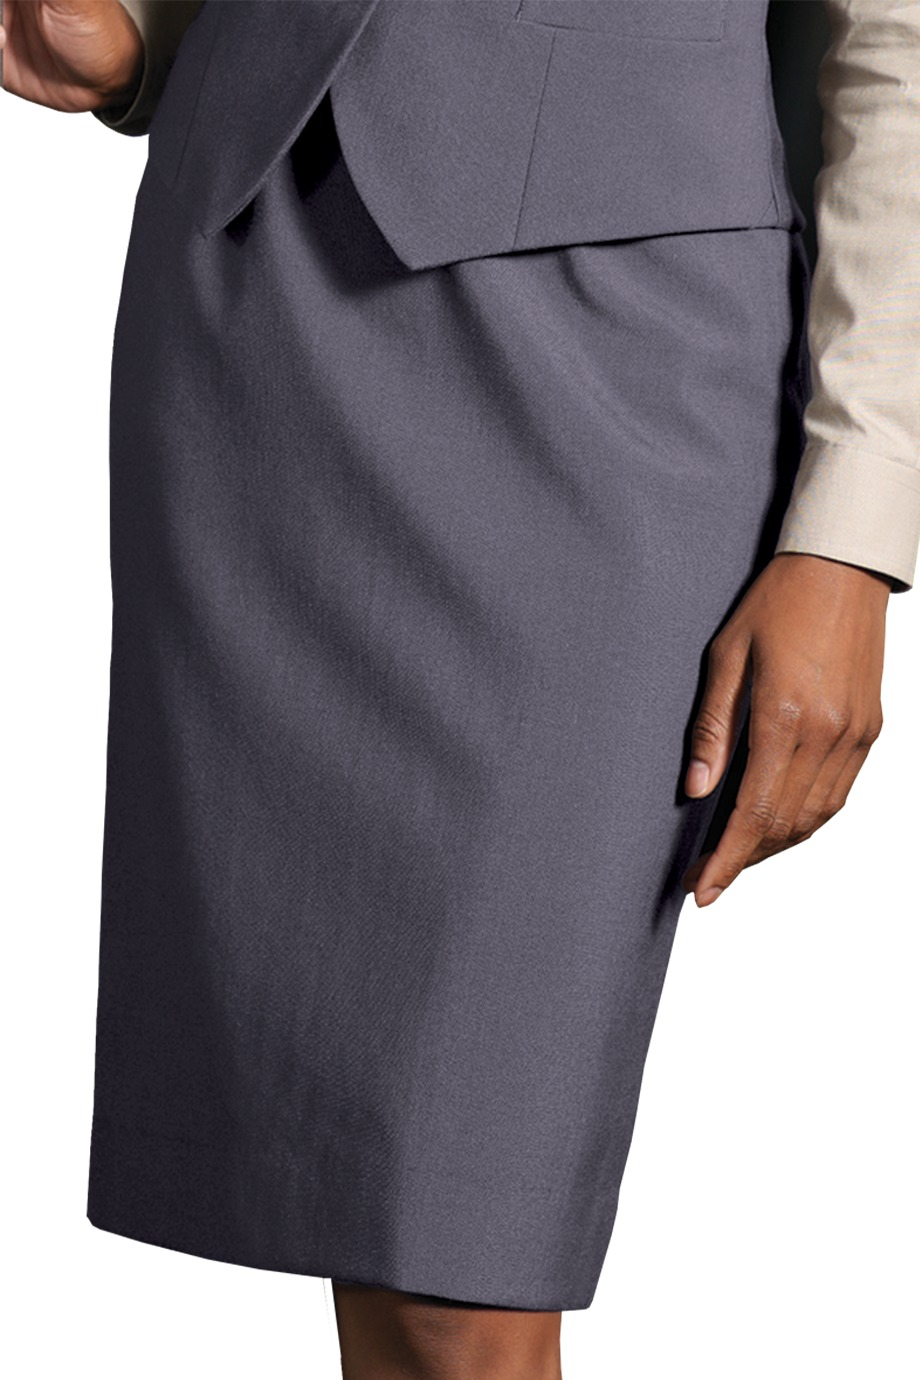 Edwards Garment 9789 - Women's Wool Blend Dress Skirt